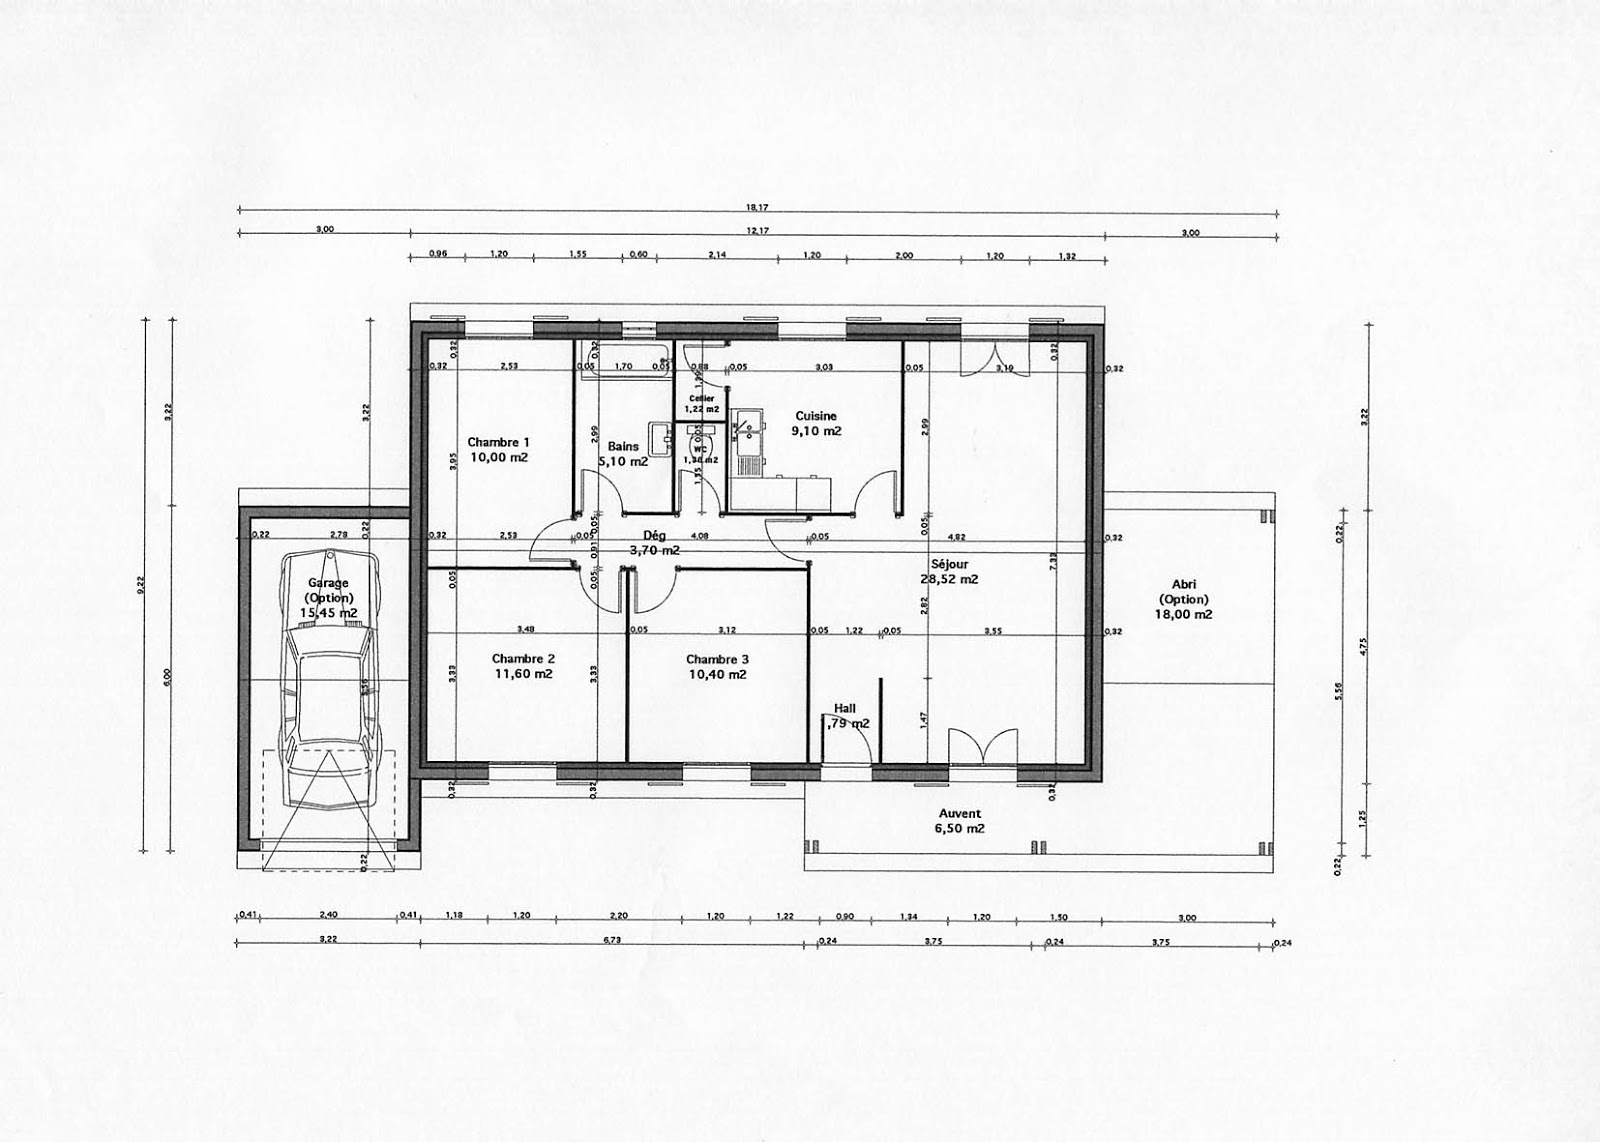 Plan de maison contemporain for Plan maison vendeenne gratuit